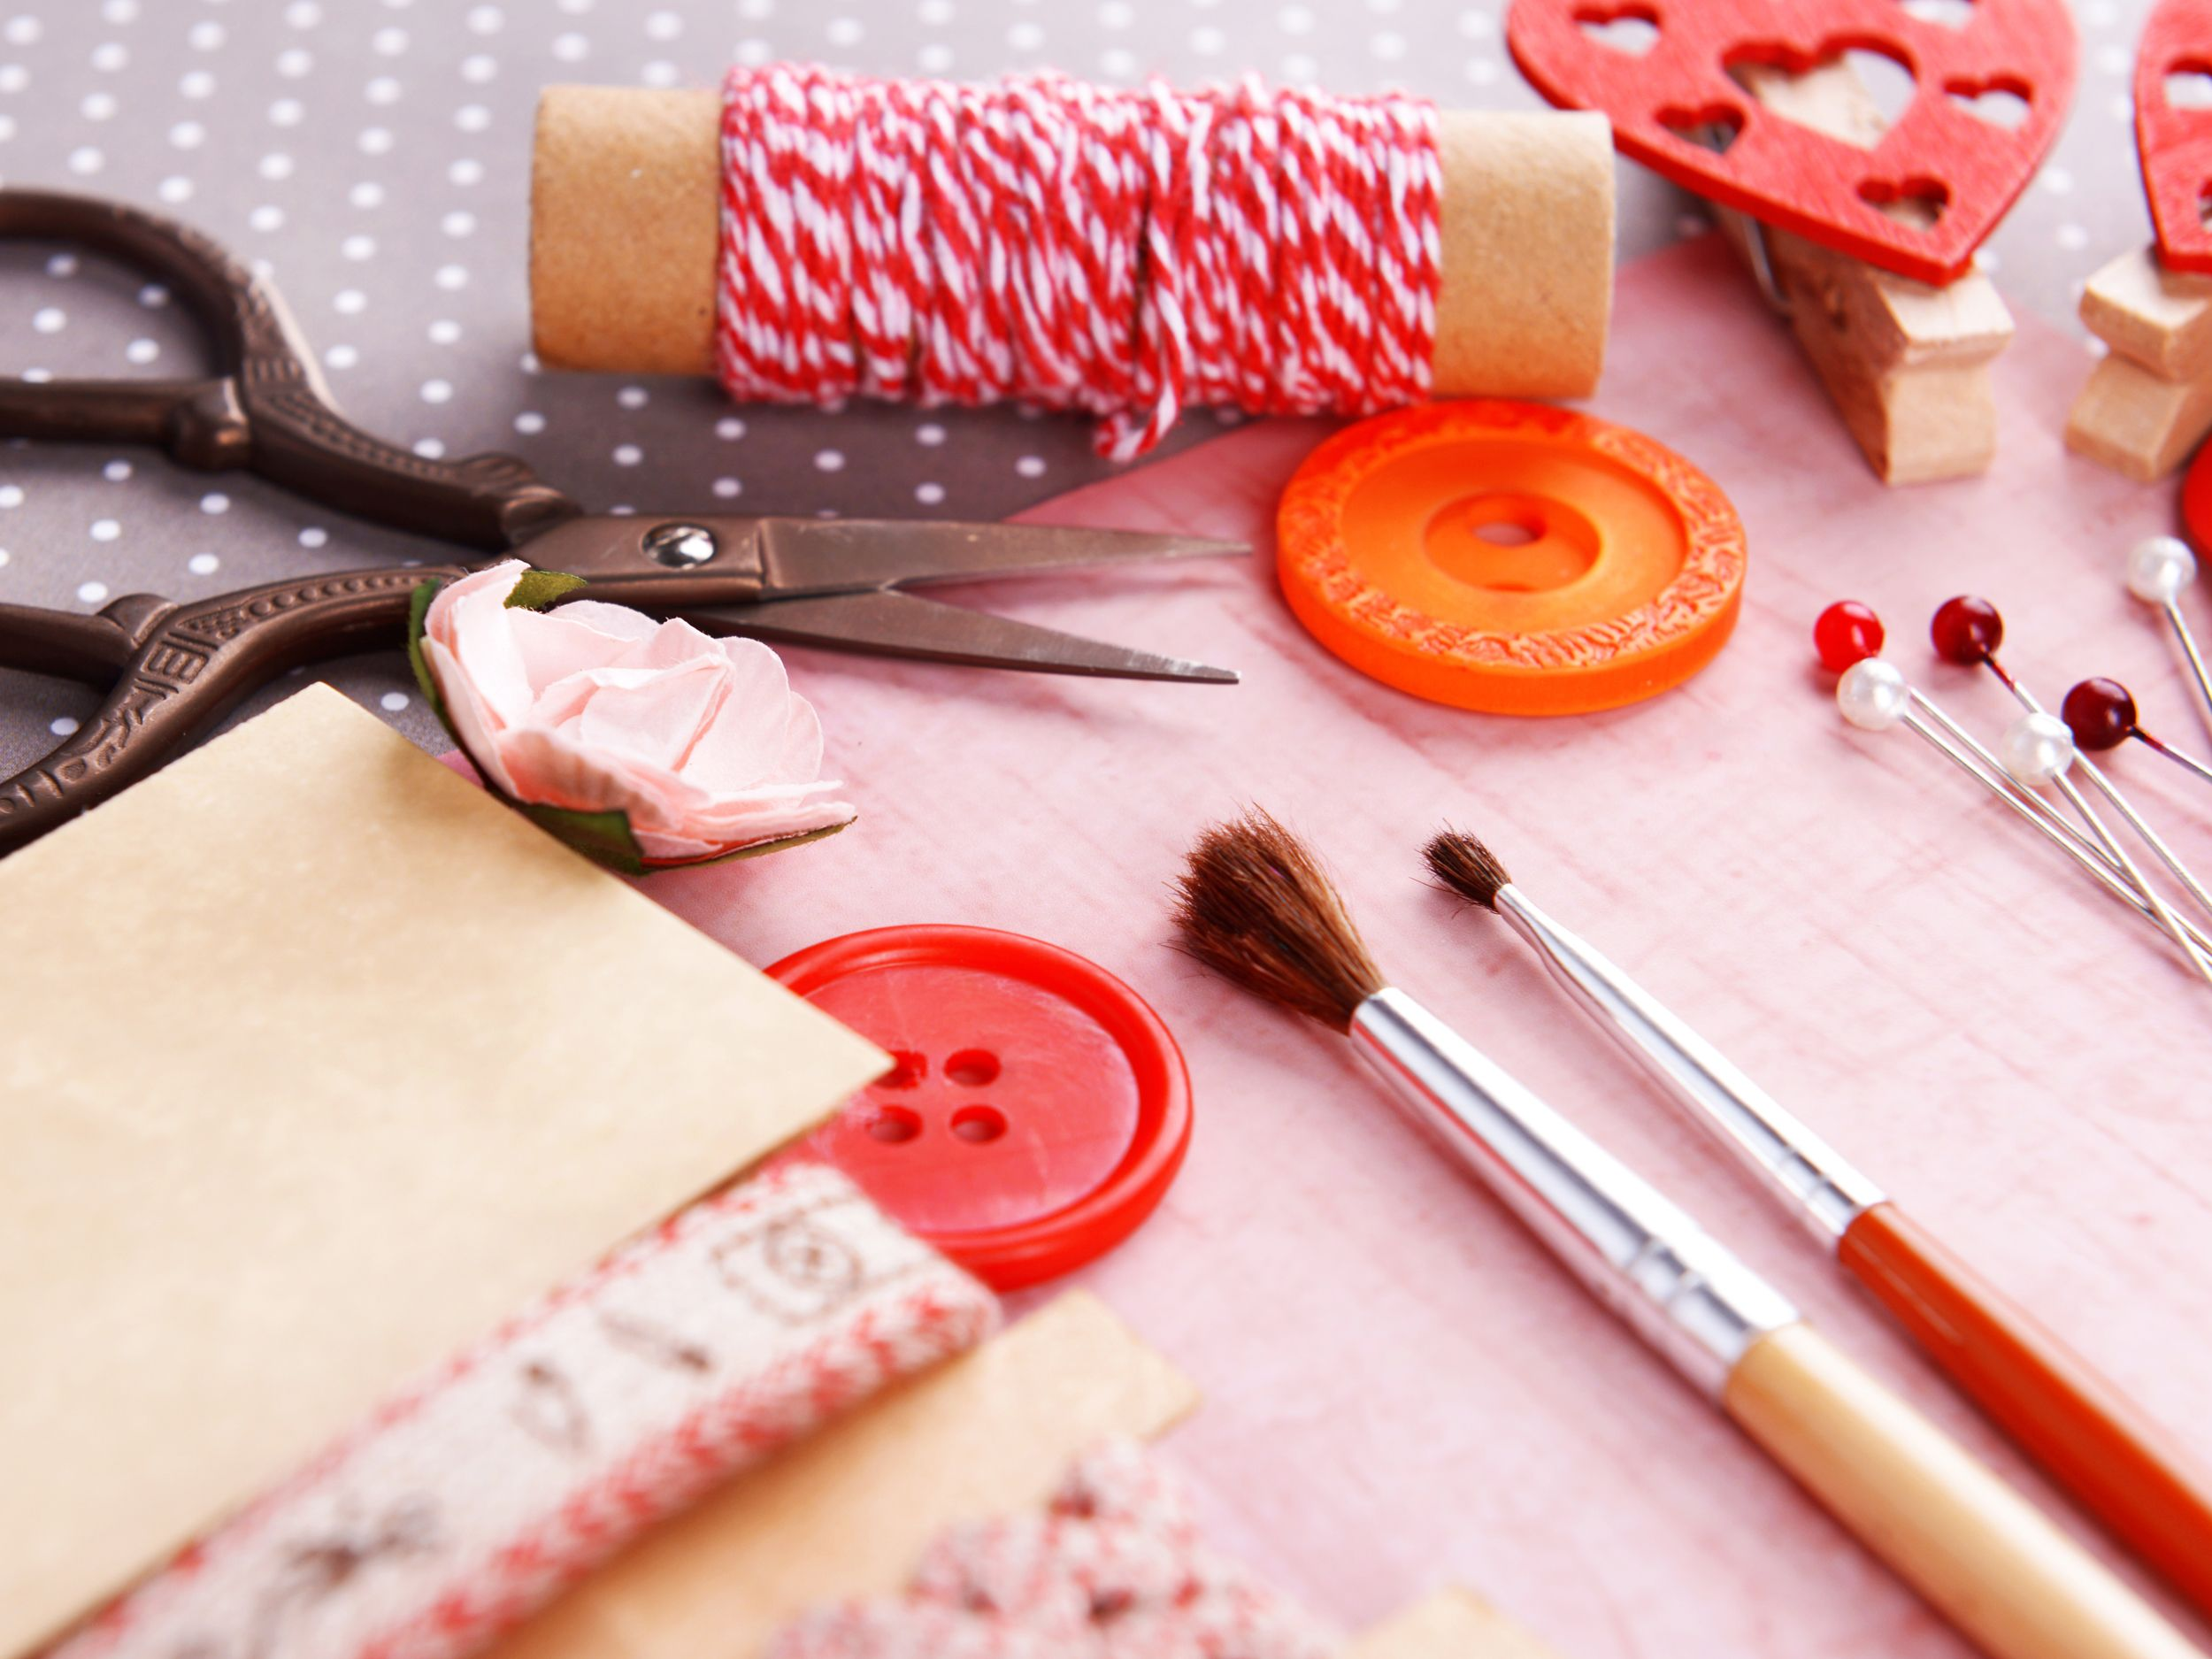 The 25 best craft supplies online ideas on pinterest for Craft supplies online cheap